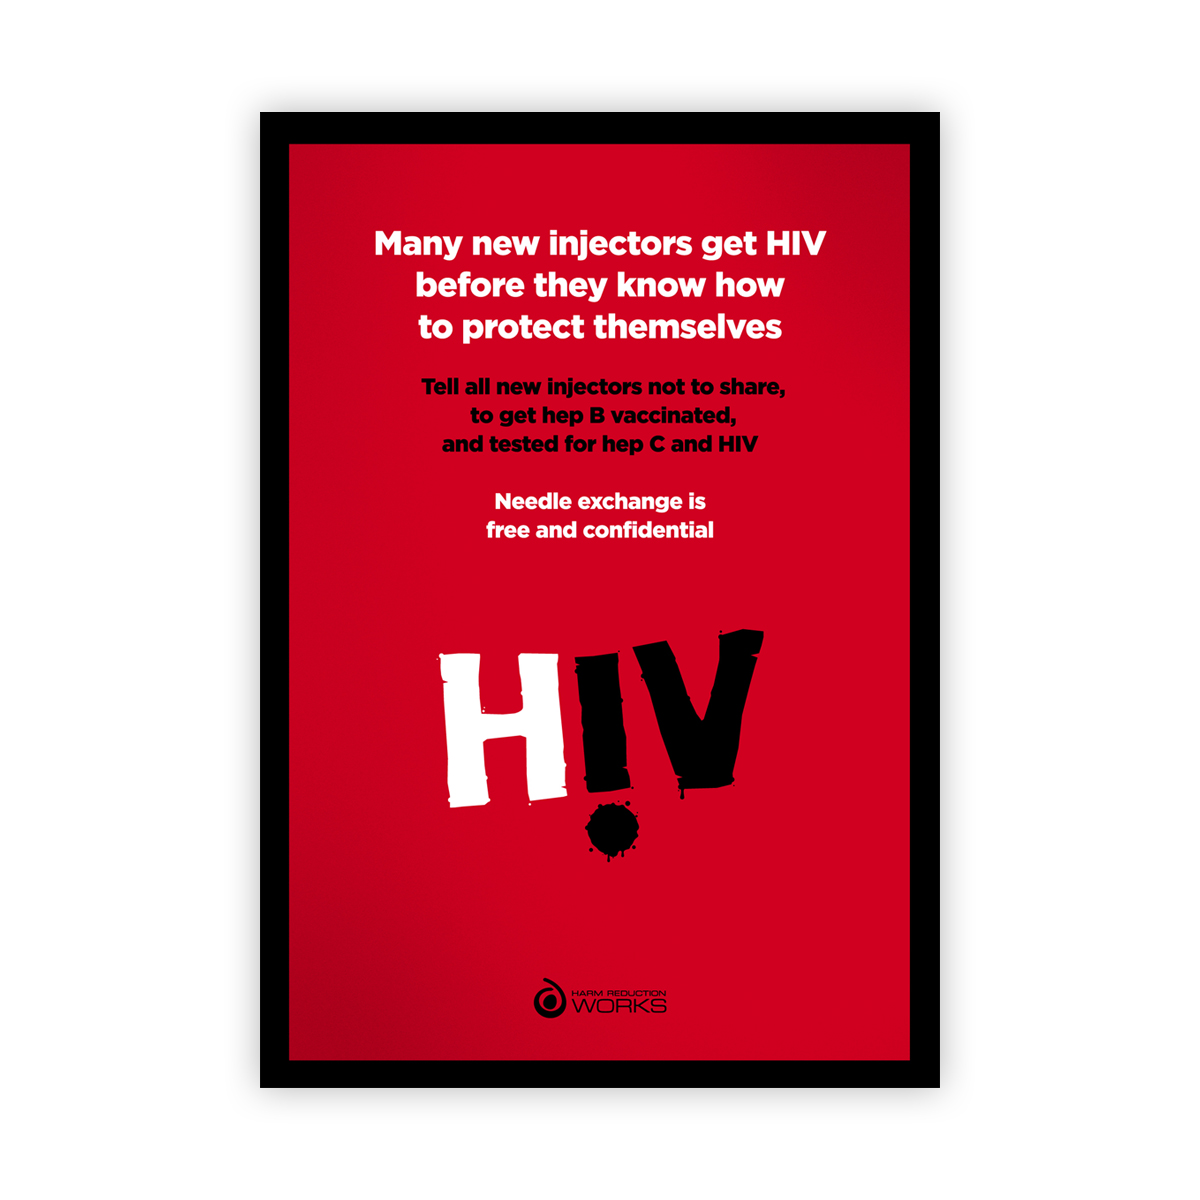 Hiv Poster New Injectors